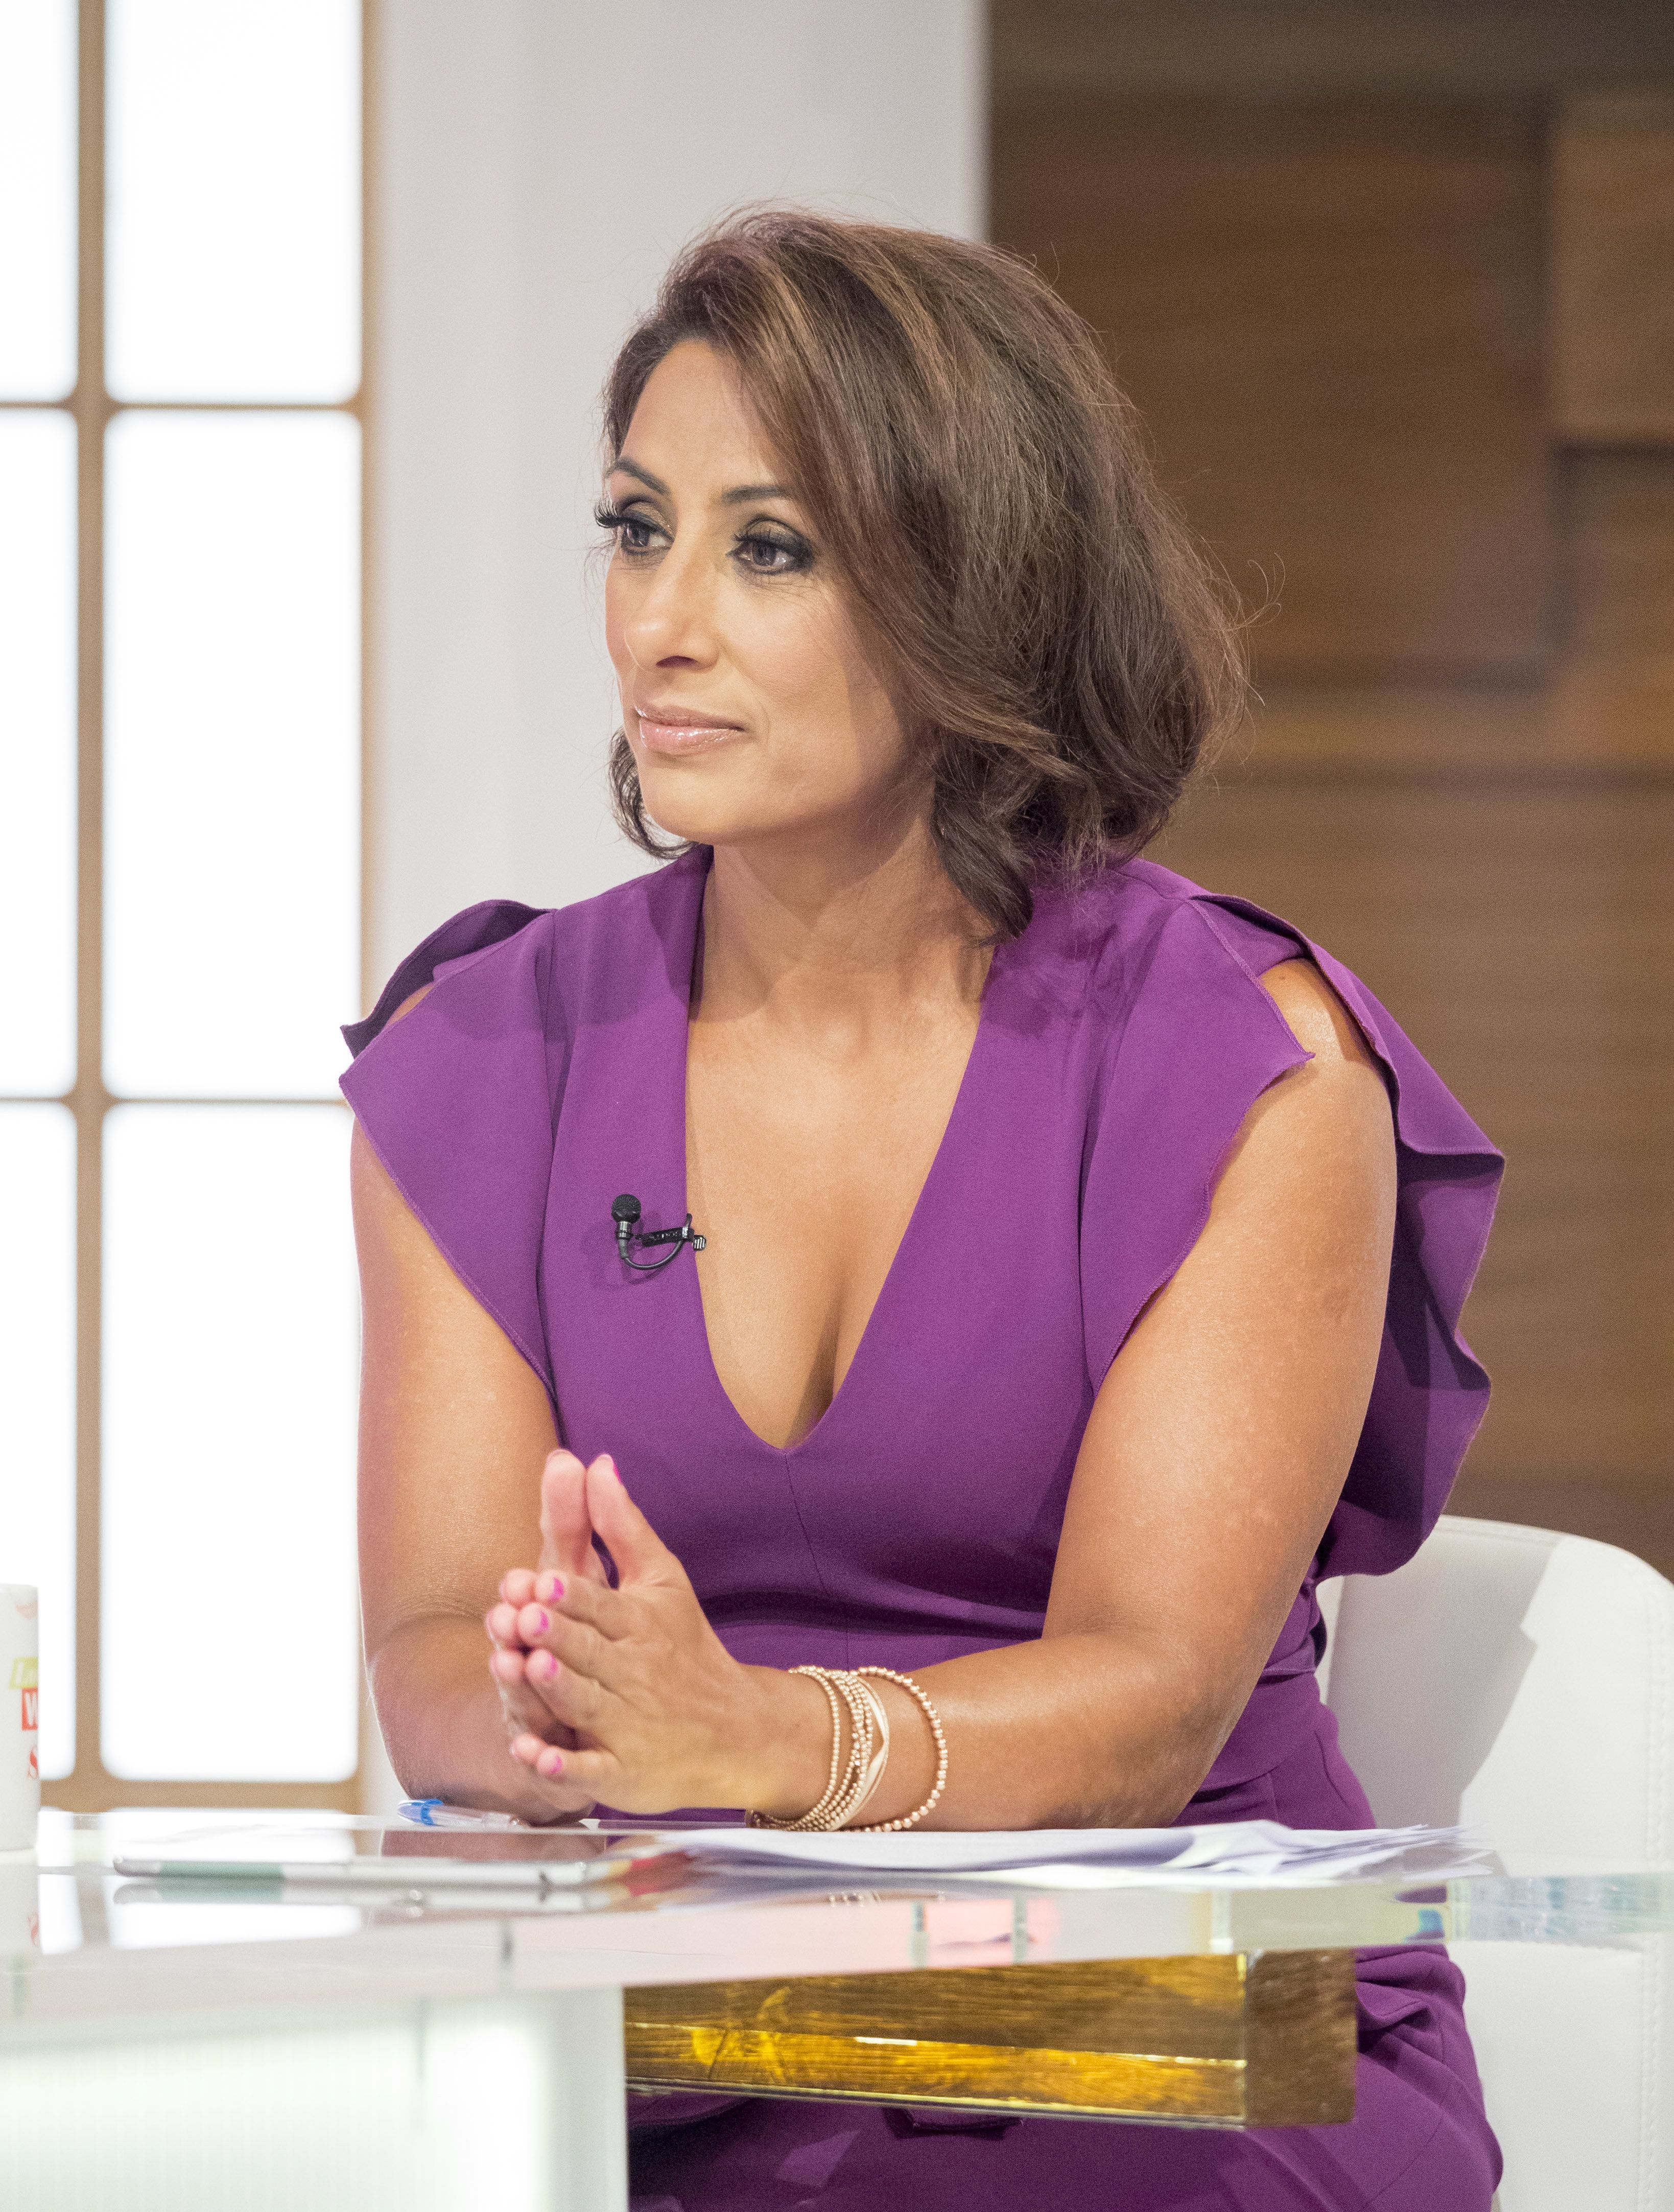 Saira Khan Reveals She And Husband Attended Therapy Sessions After 'No Sex'